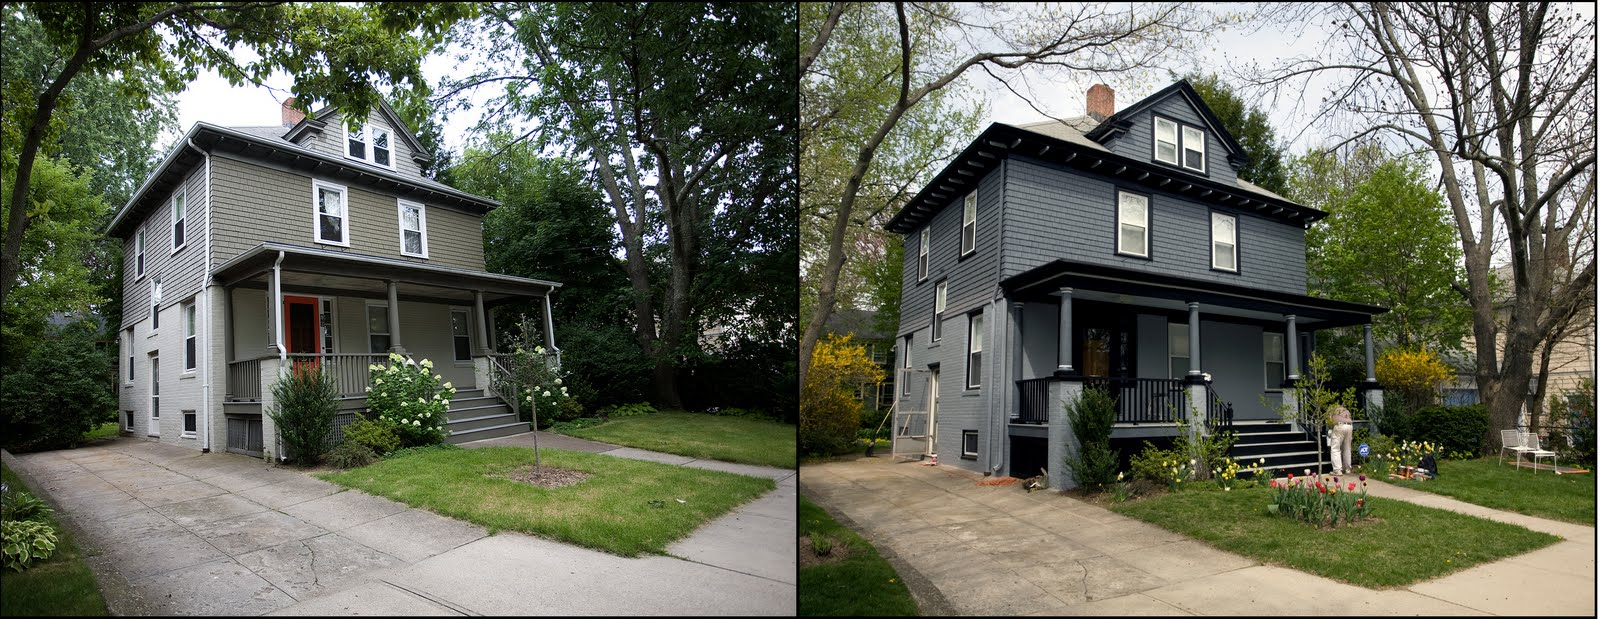 Before And After Home Renovations [www.therhodeguide.com]